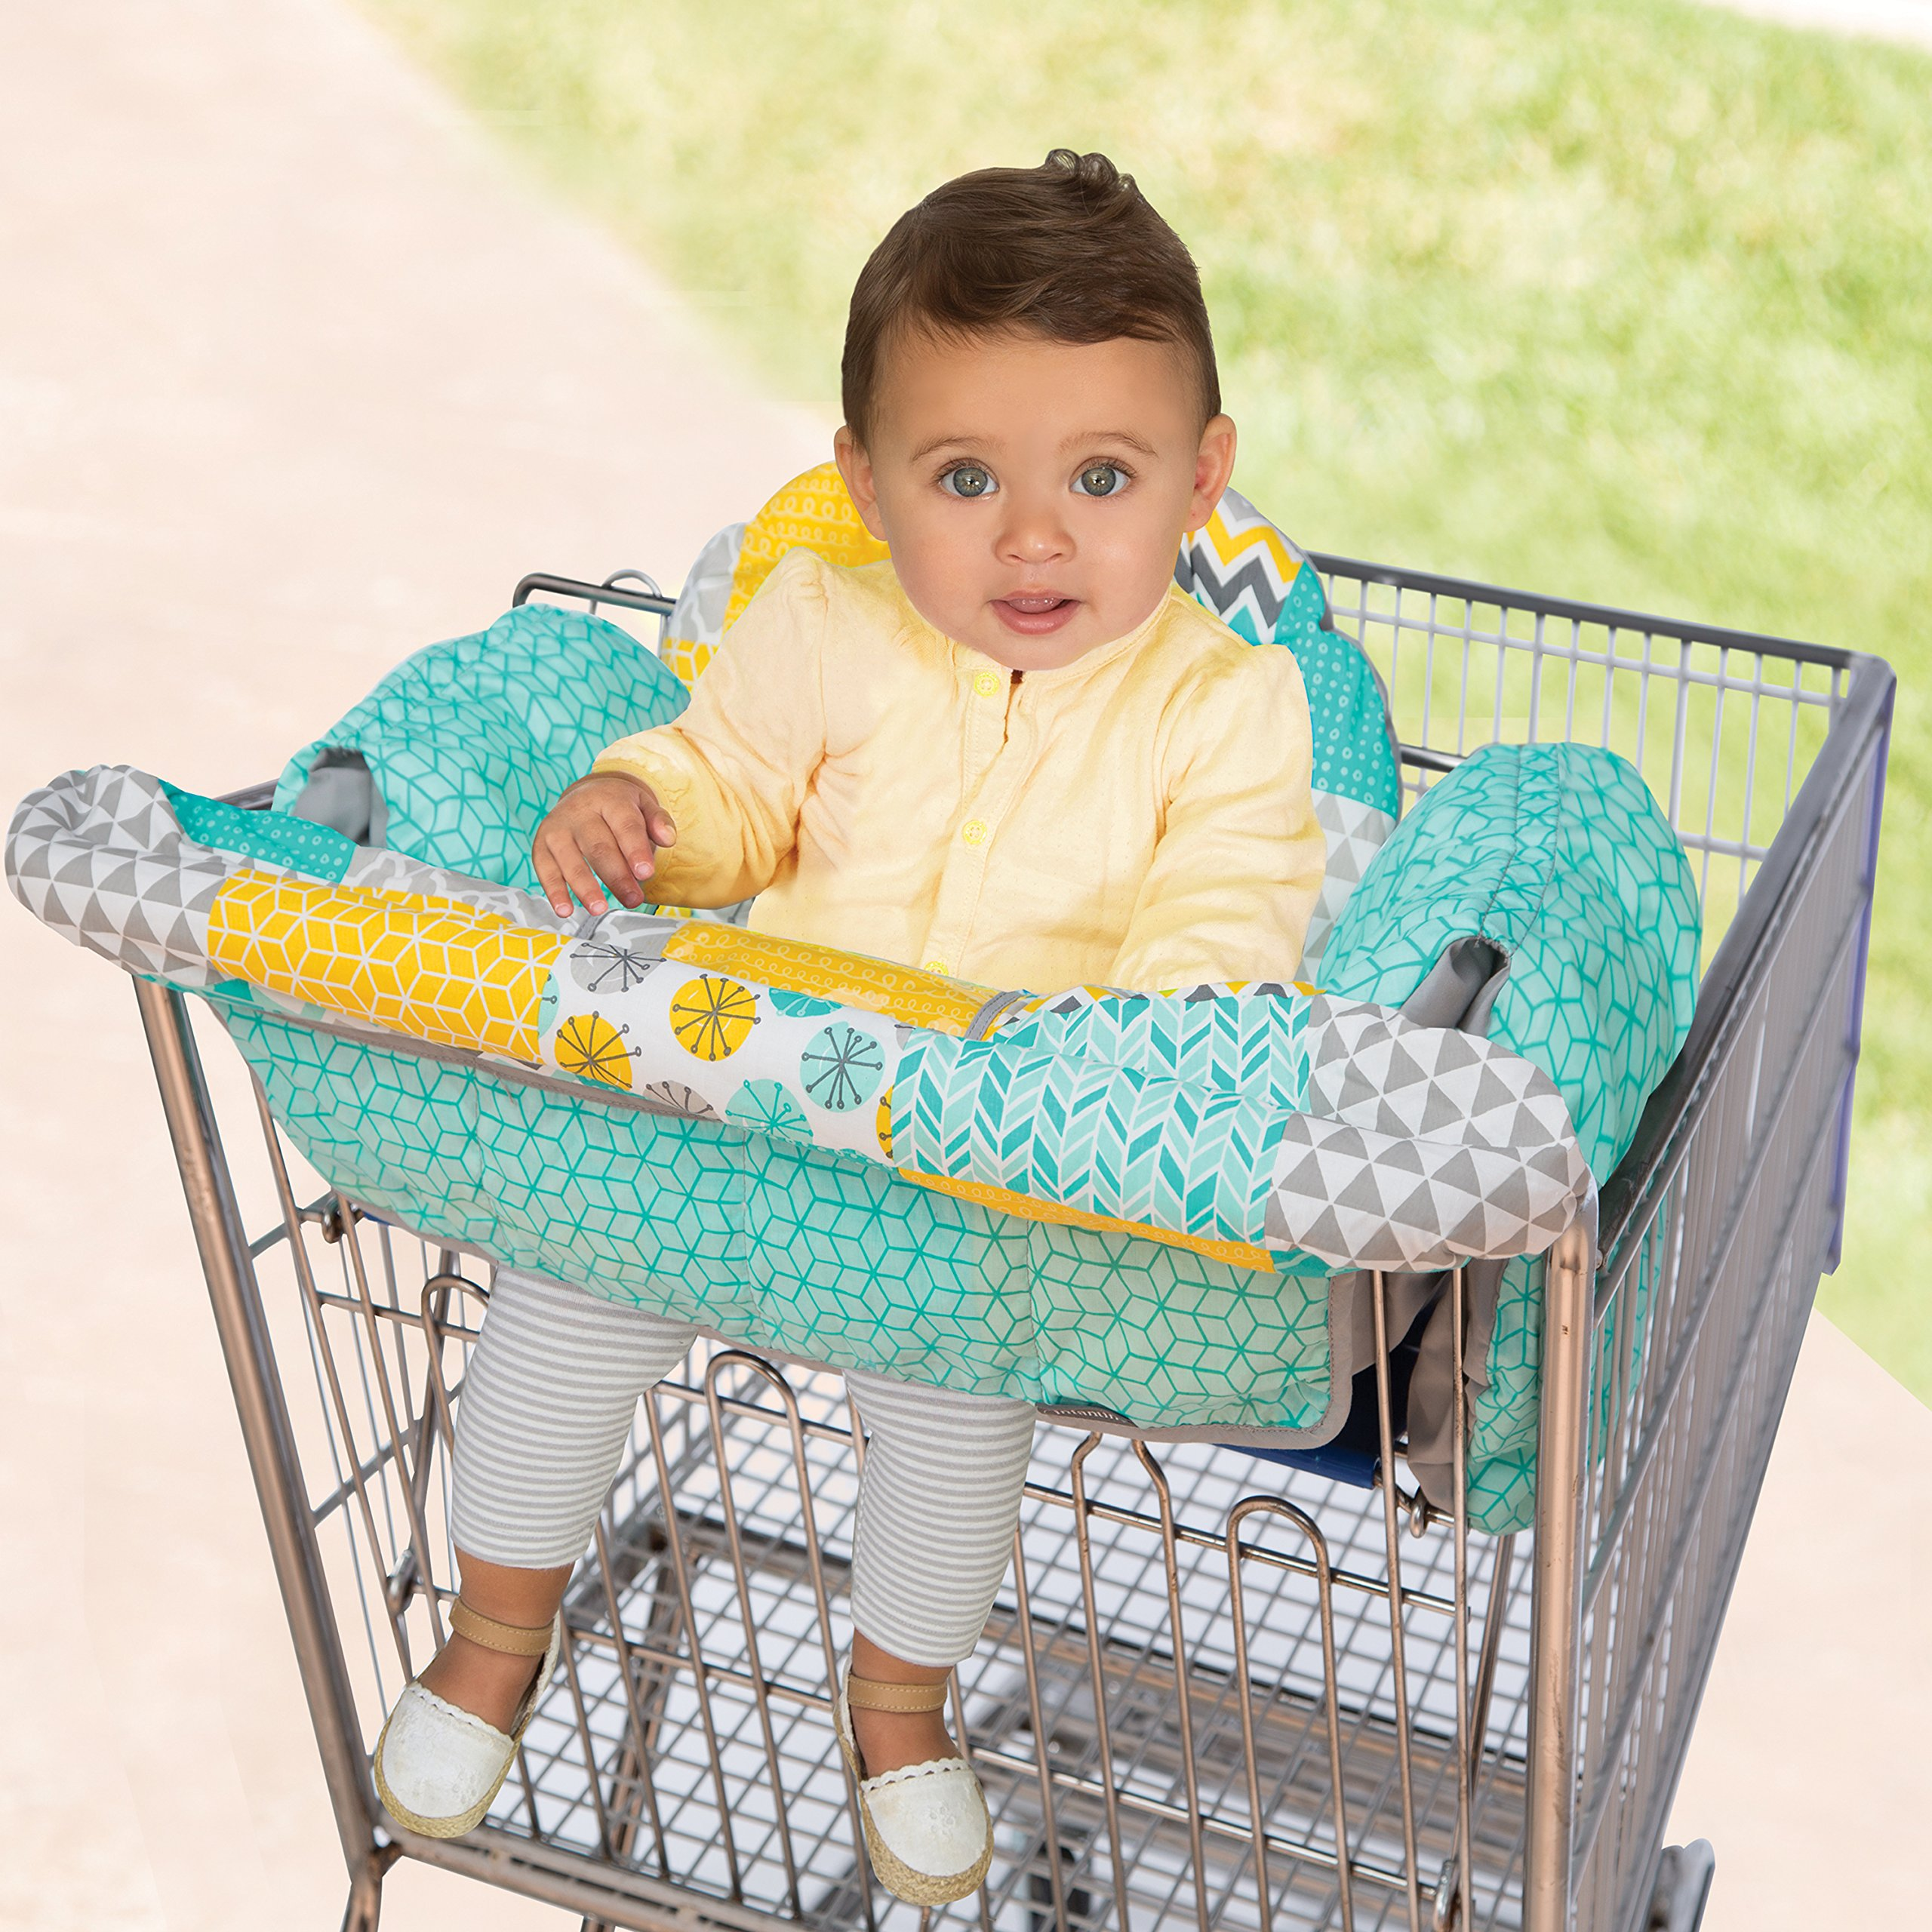 Infantino Unisex Baby Upright Travel Necessities Supportive Cart Cover, Teal by Infantino (Image #4)